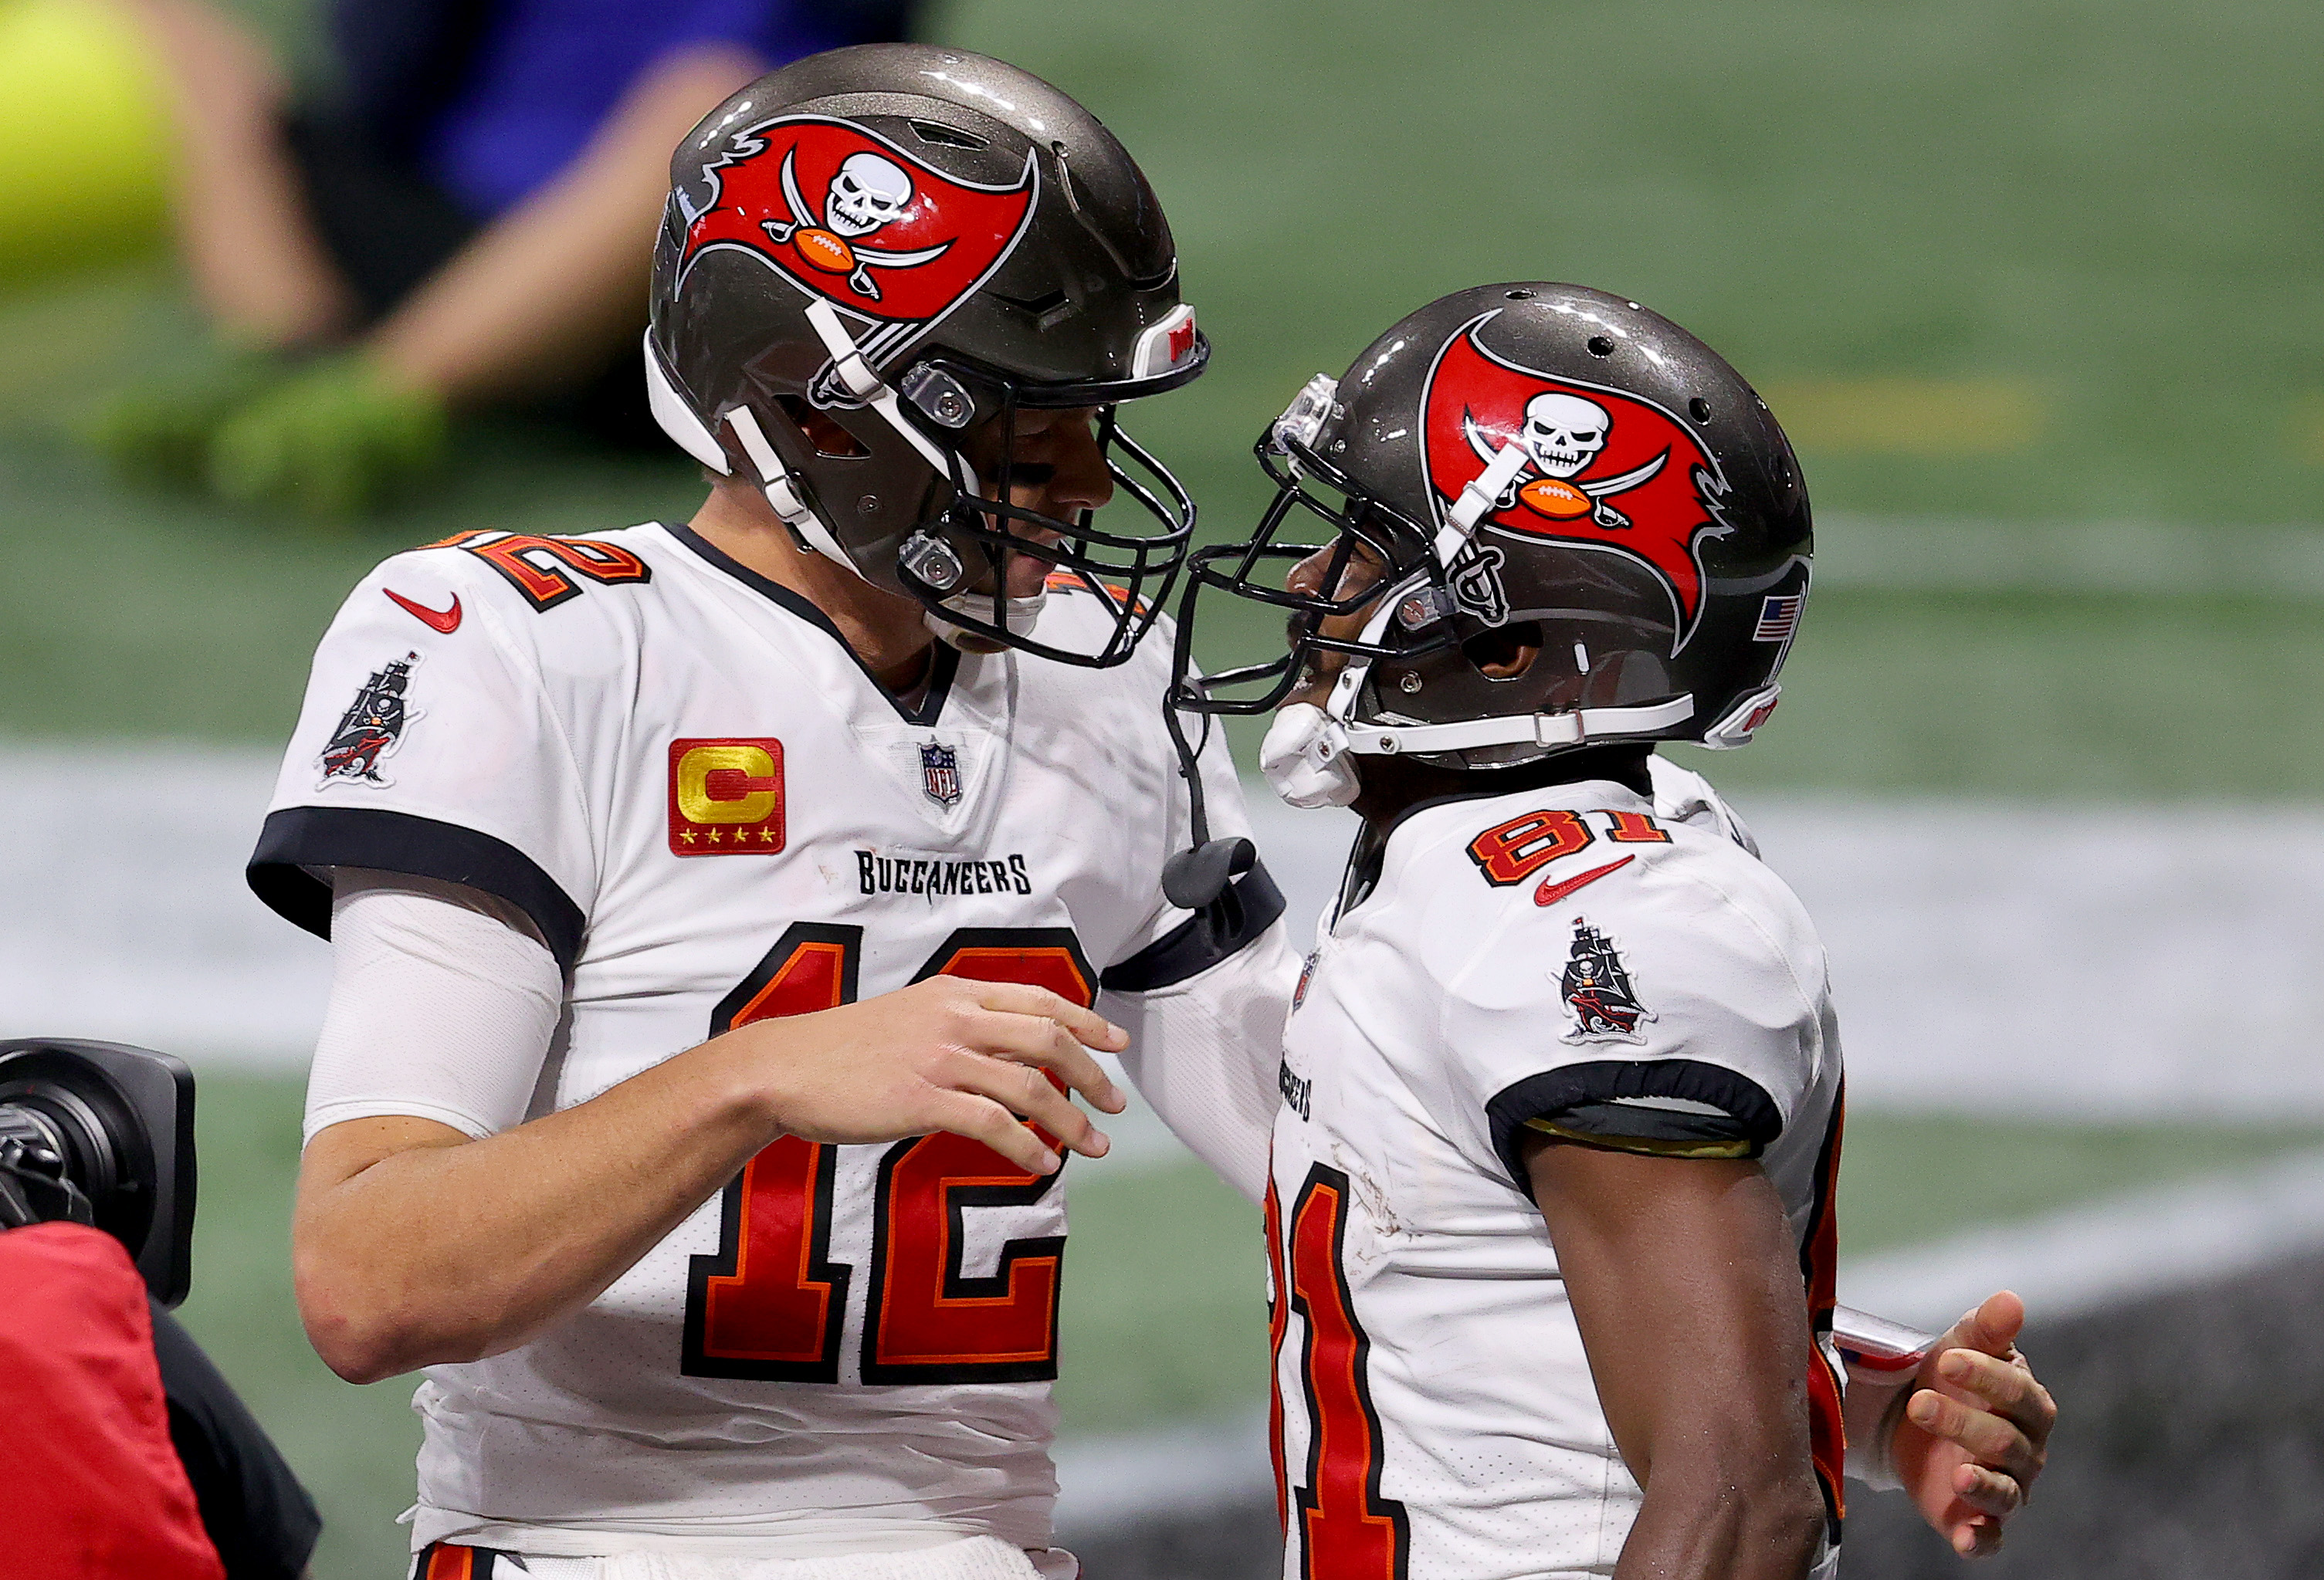 Nfl Bucs Look To Clinch Playoff Spot Vs Lions